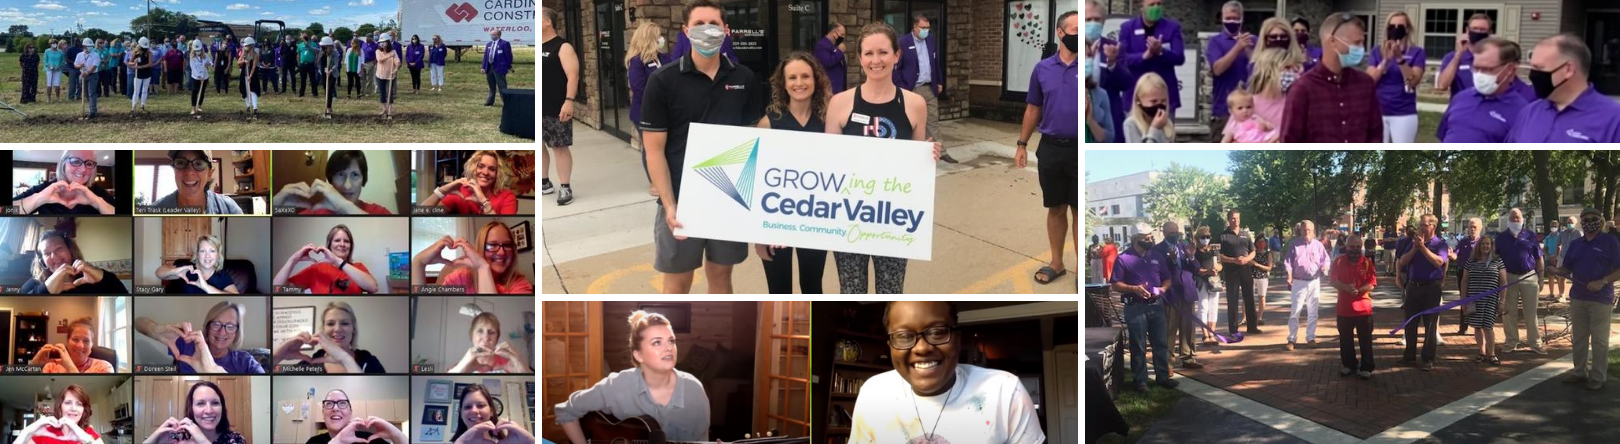 Growing the Cedar Valley